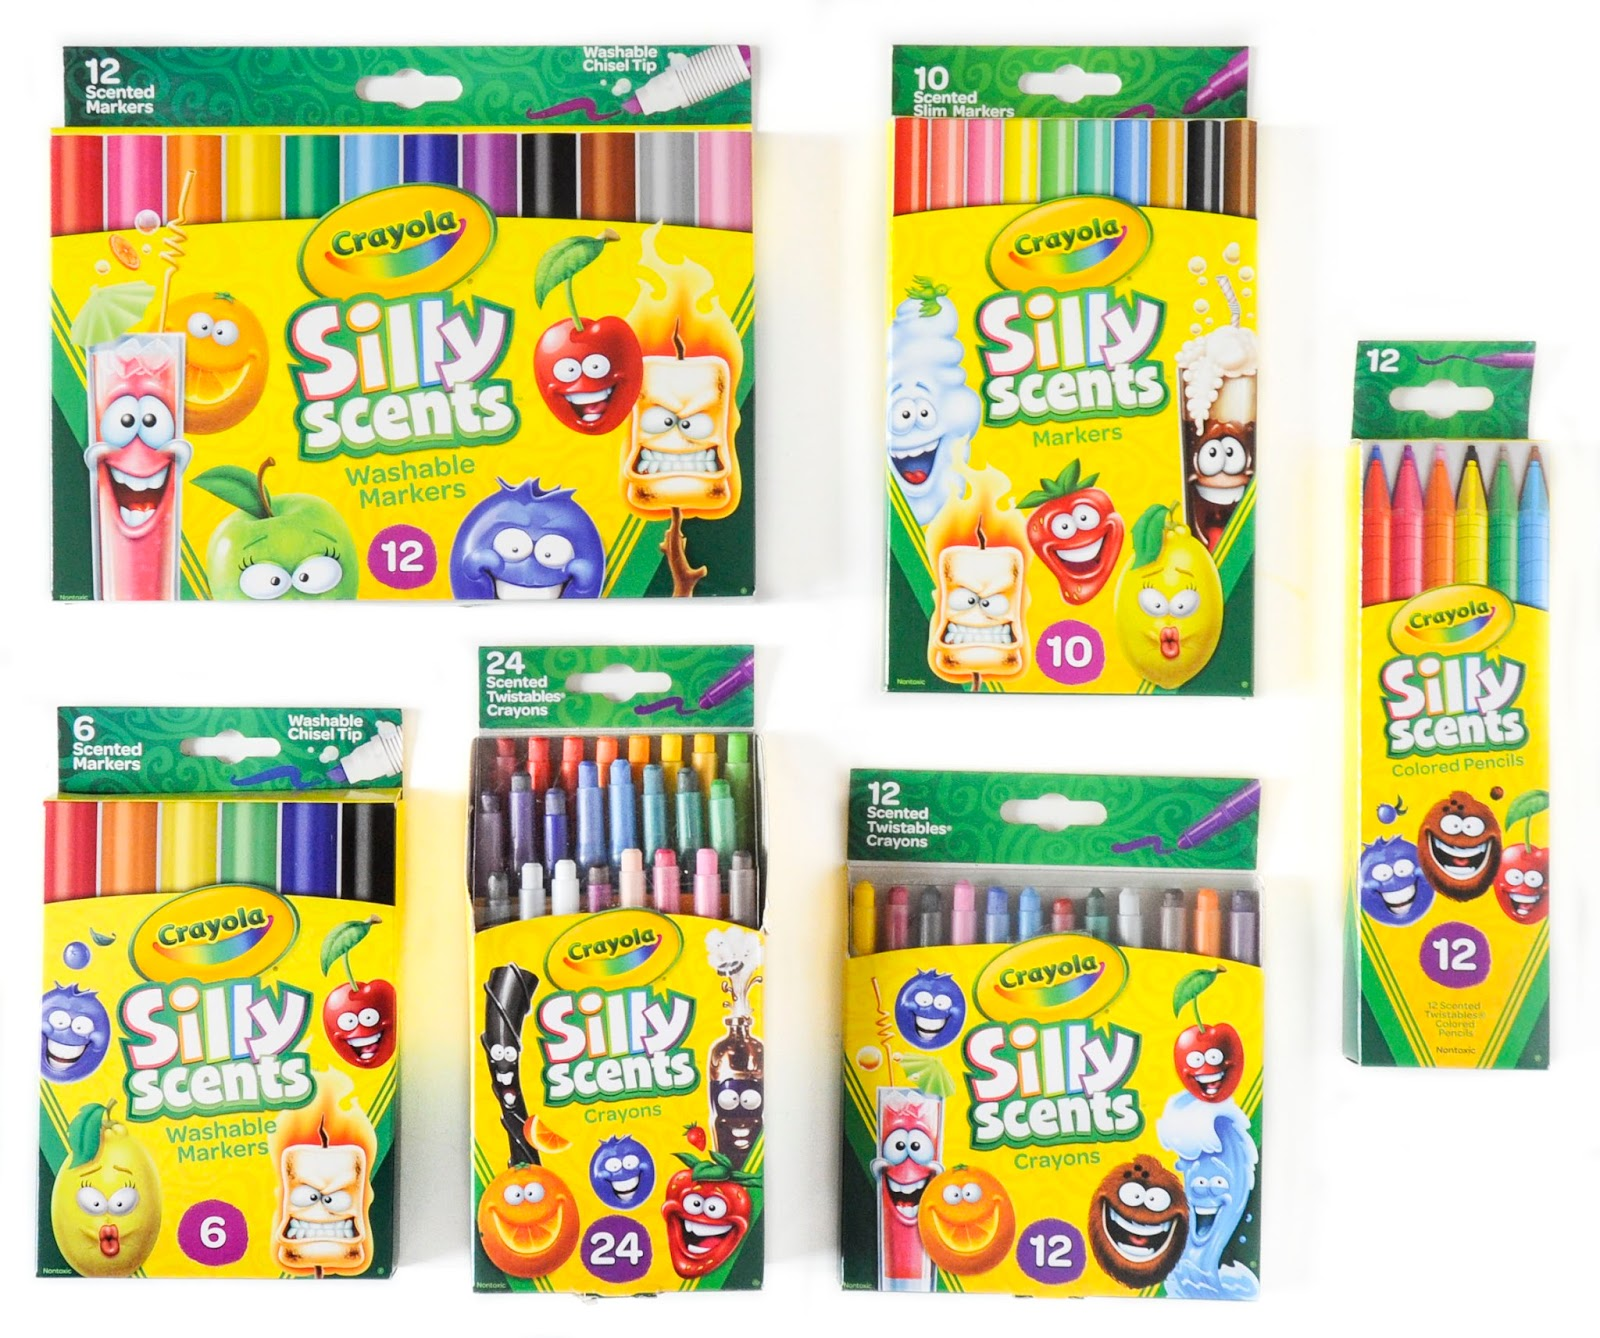 Crayola Silly Scents 12 Twistables Coloured Scented Pencil Crayons